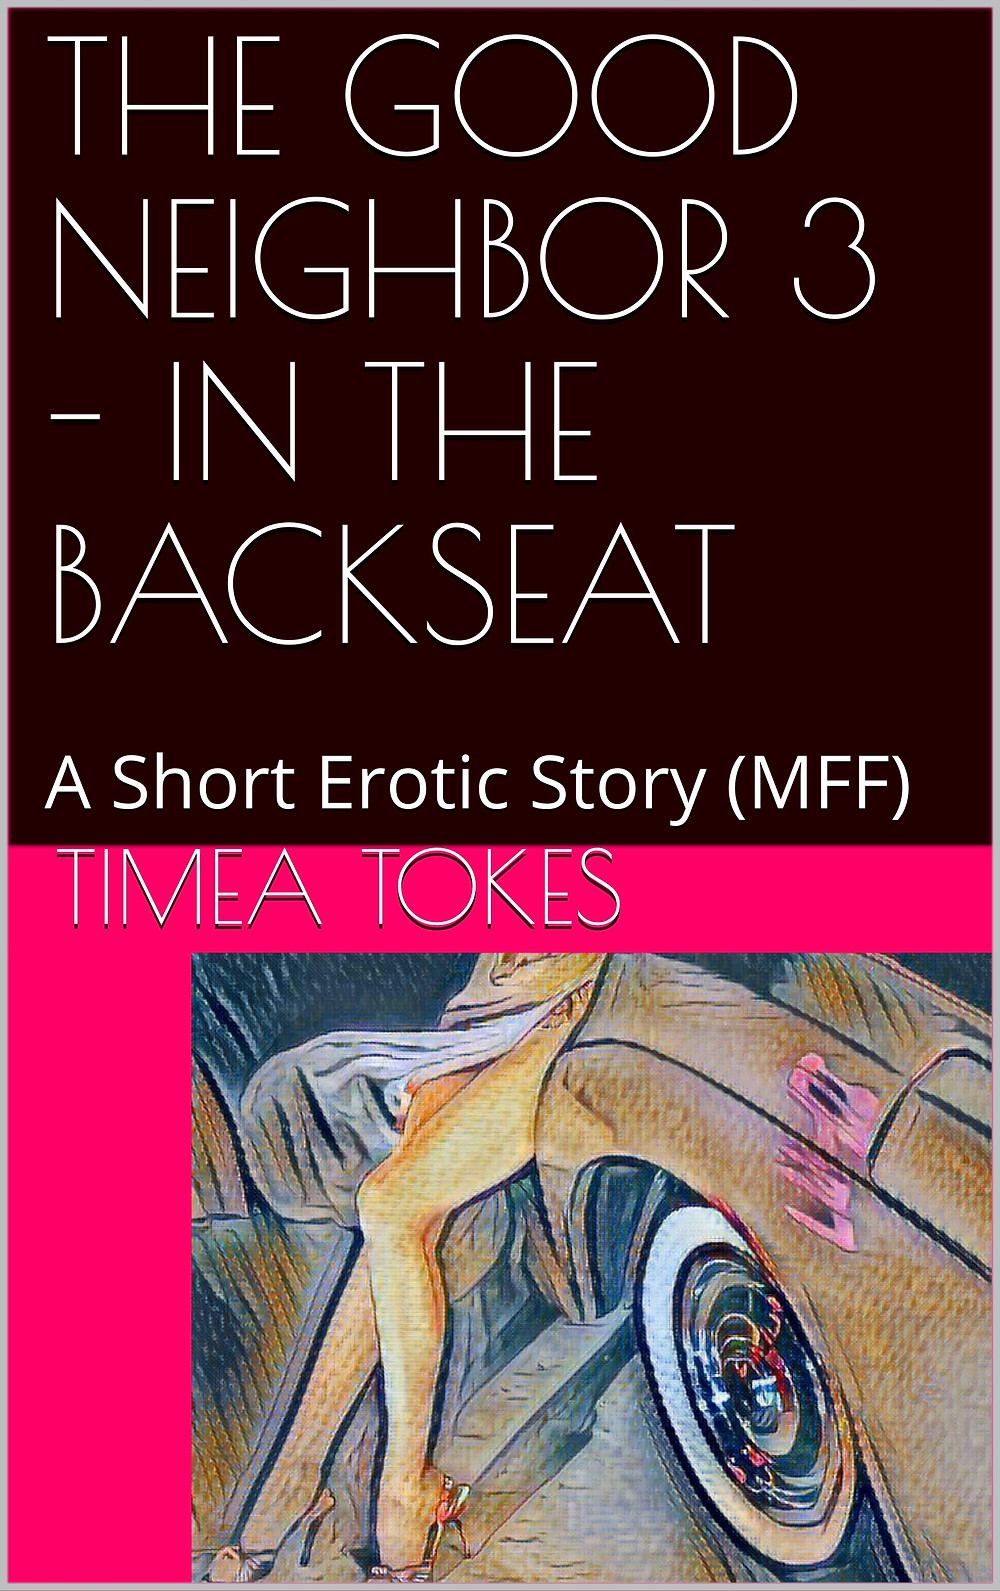 The Good Neighbor 3 - In the Backseat by Timea Tokes